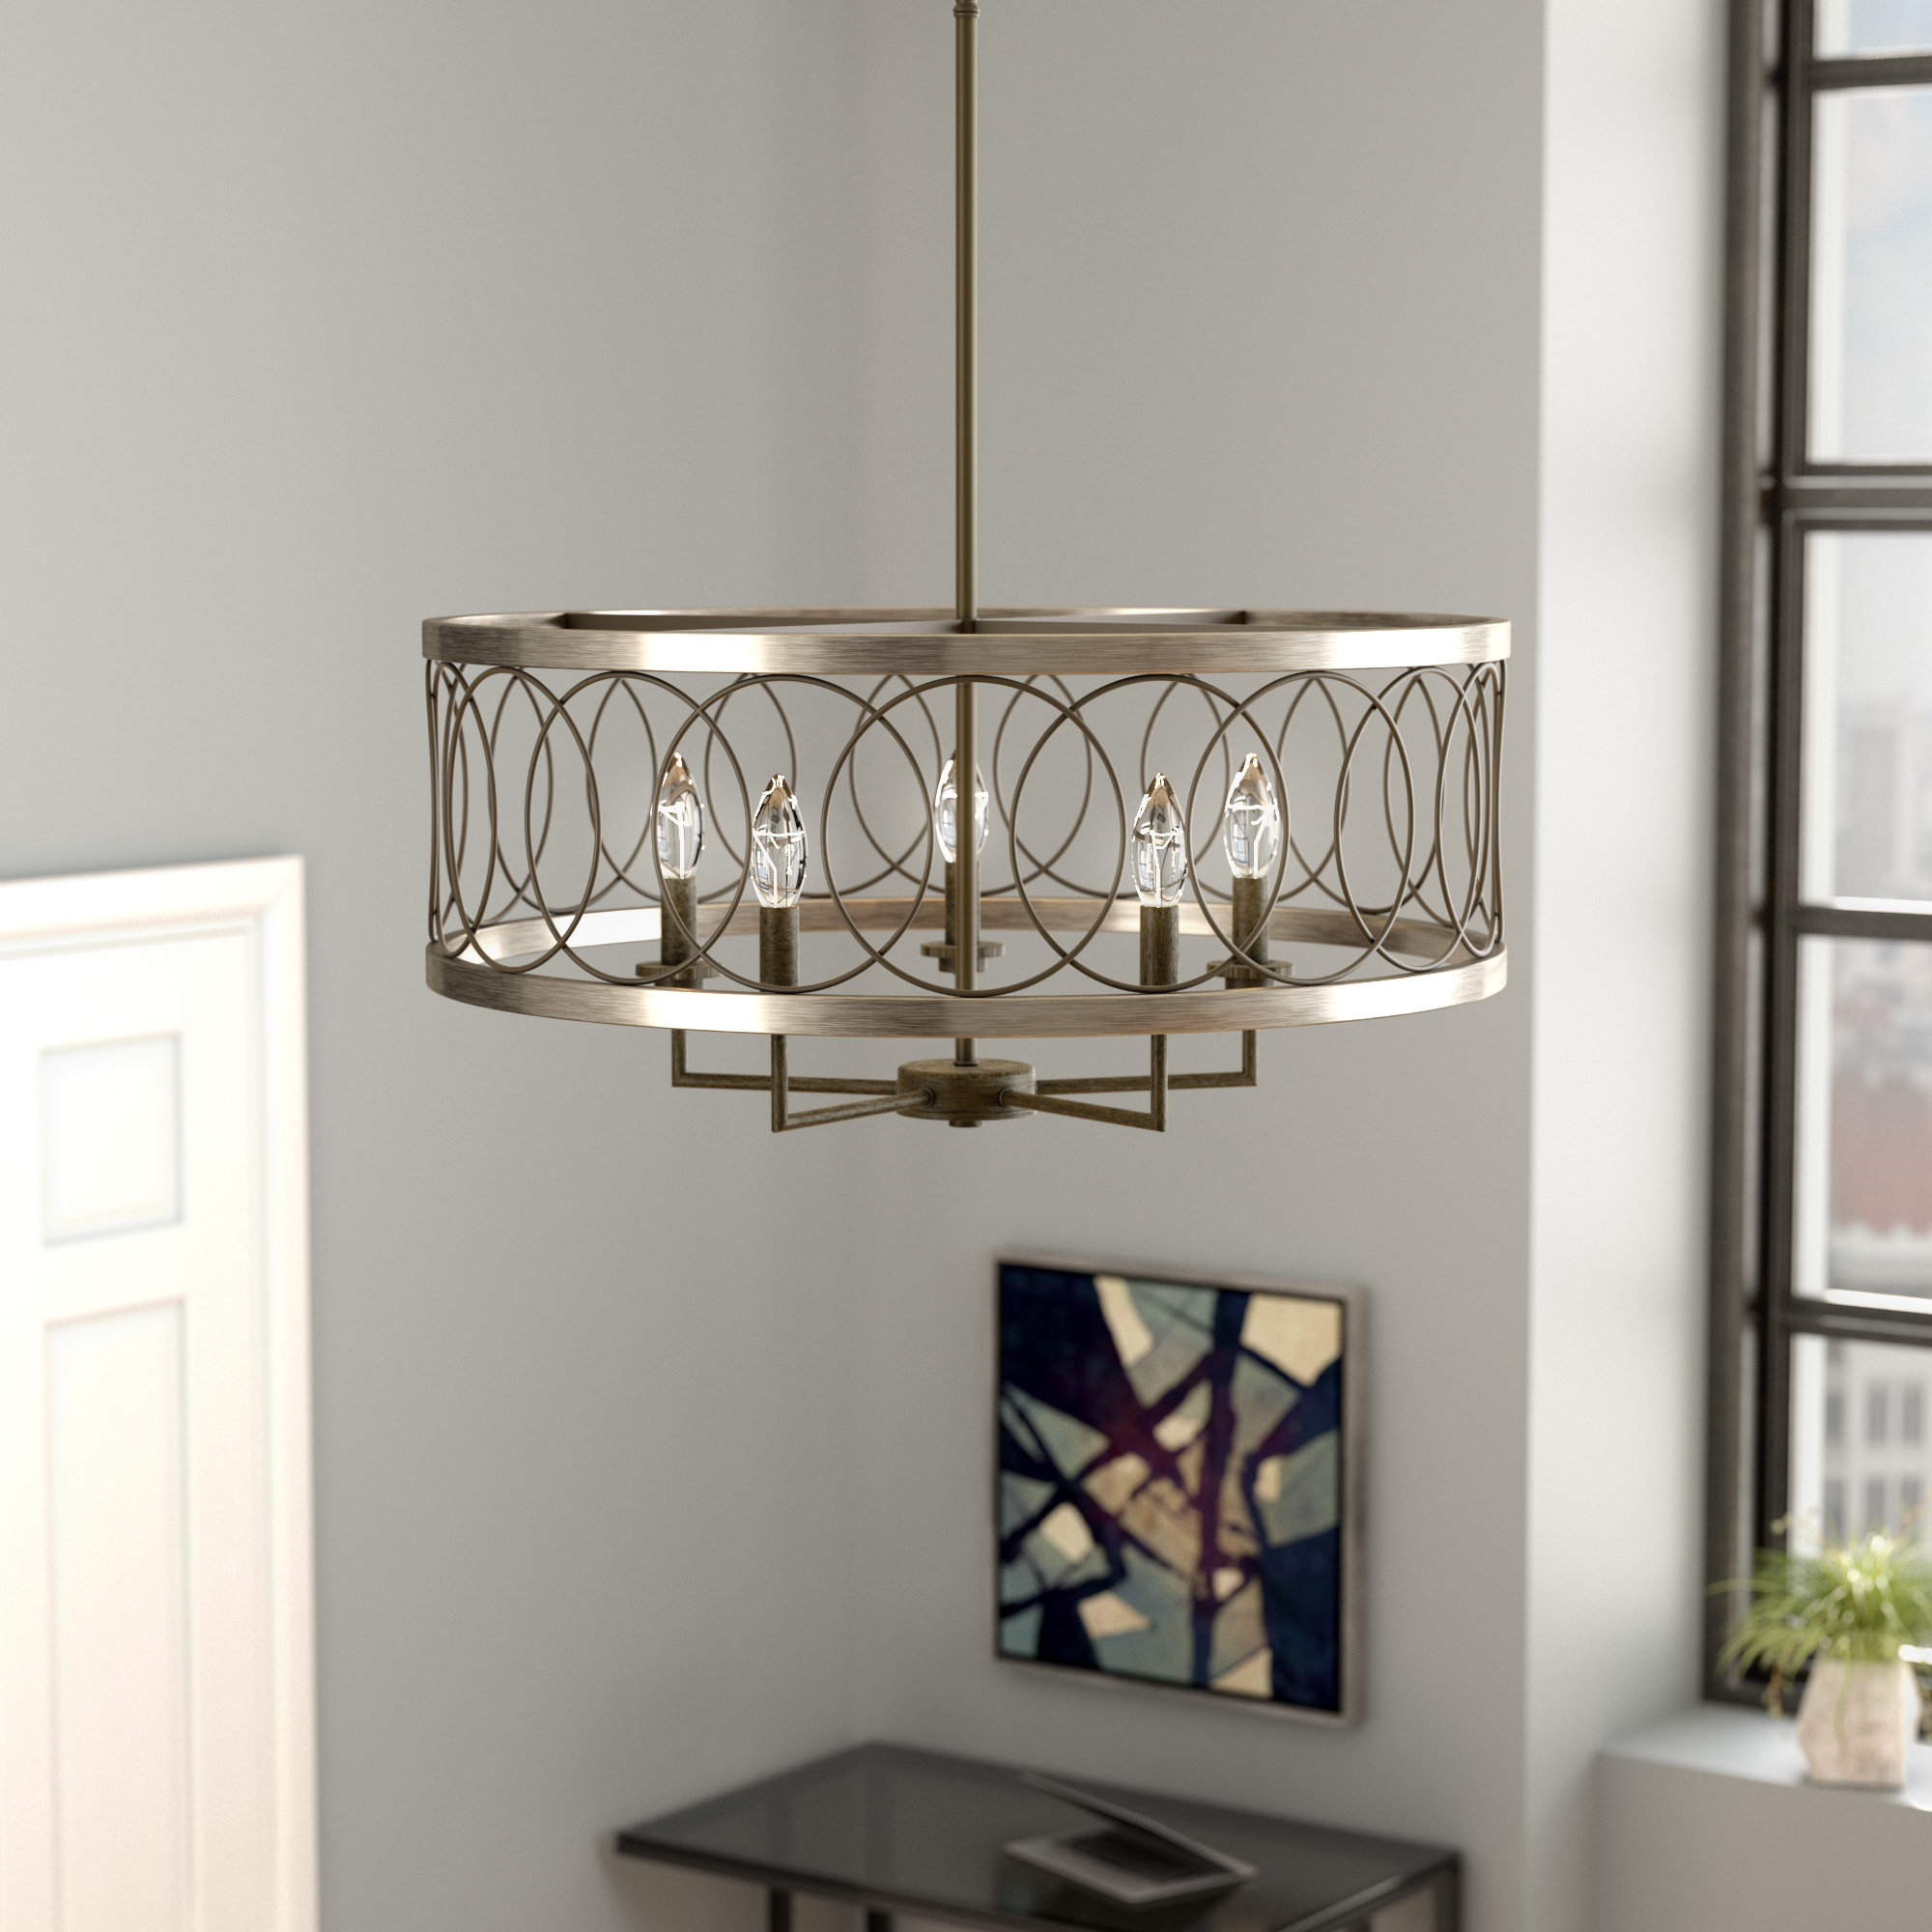 Most Popular Laurel Foundry Modern Farmhouse Denise 4 Light Lantern Drum With Regard To Armande 4 Light Lantern Drum Pendants (Gallery 9 of 20)